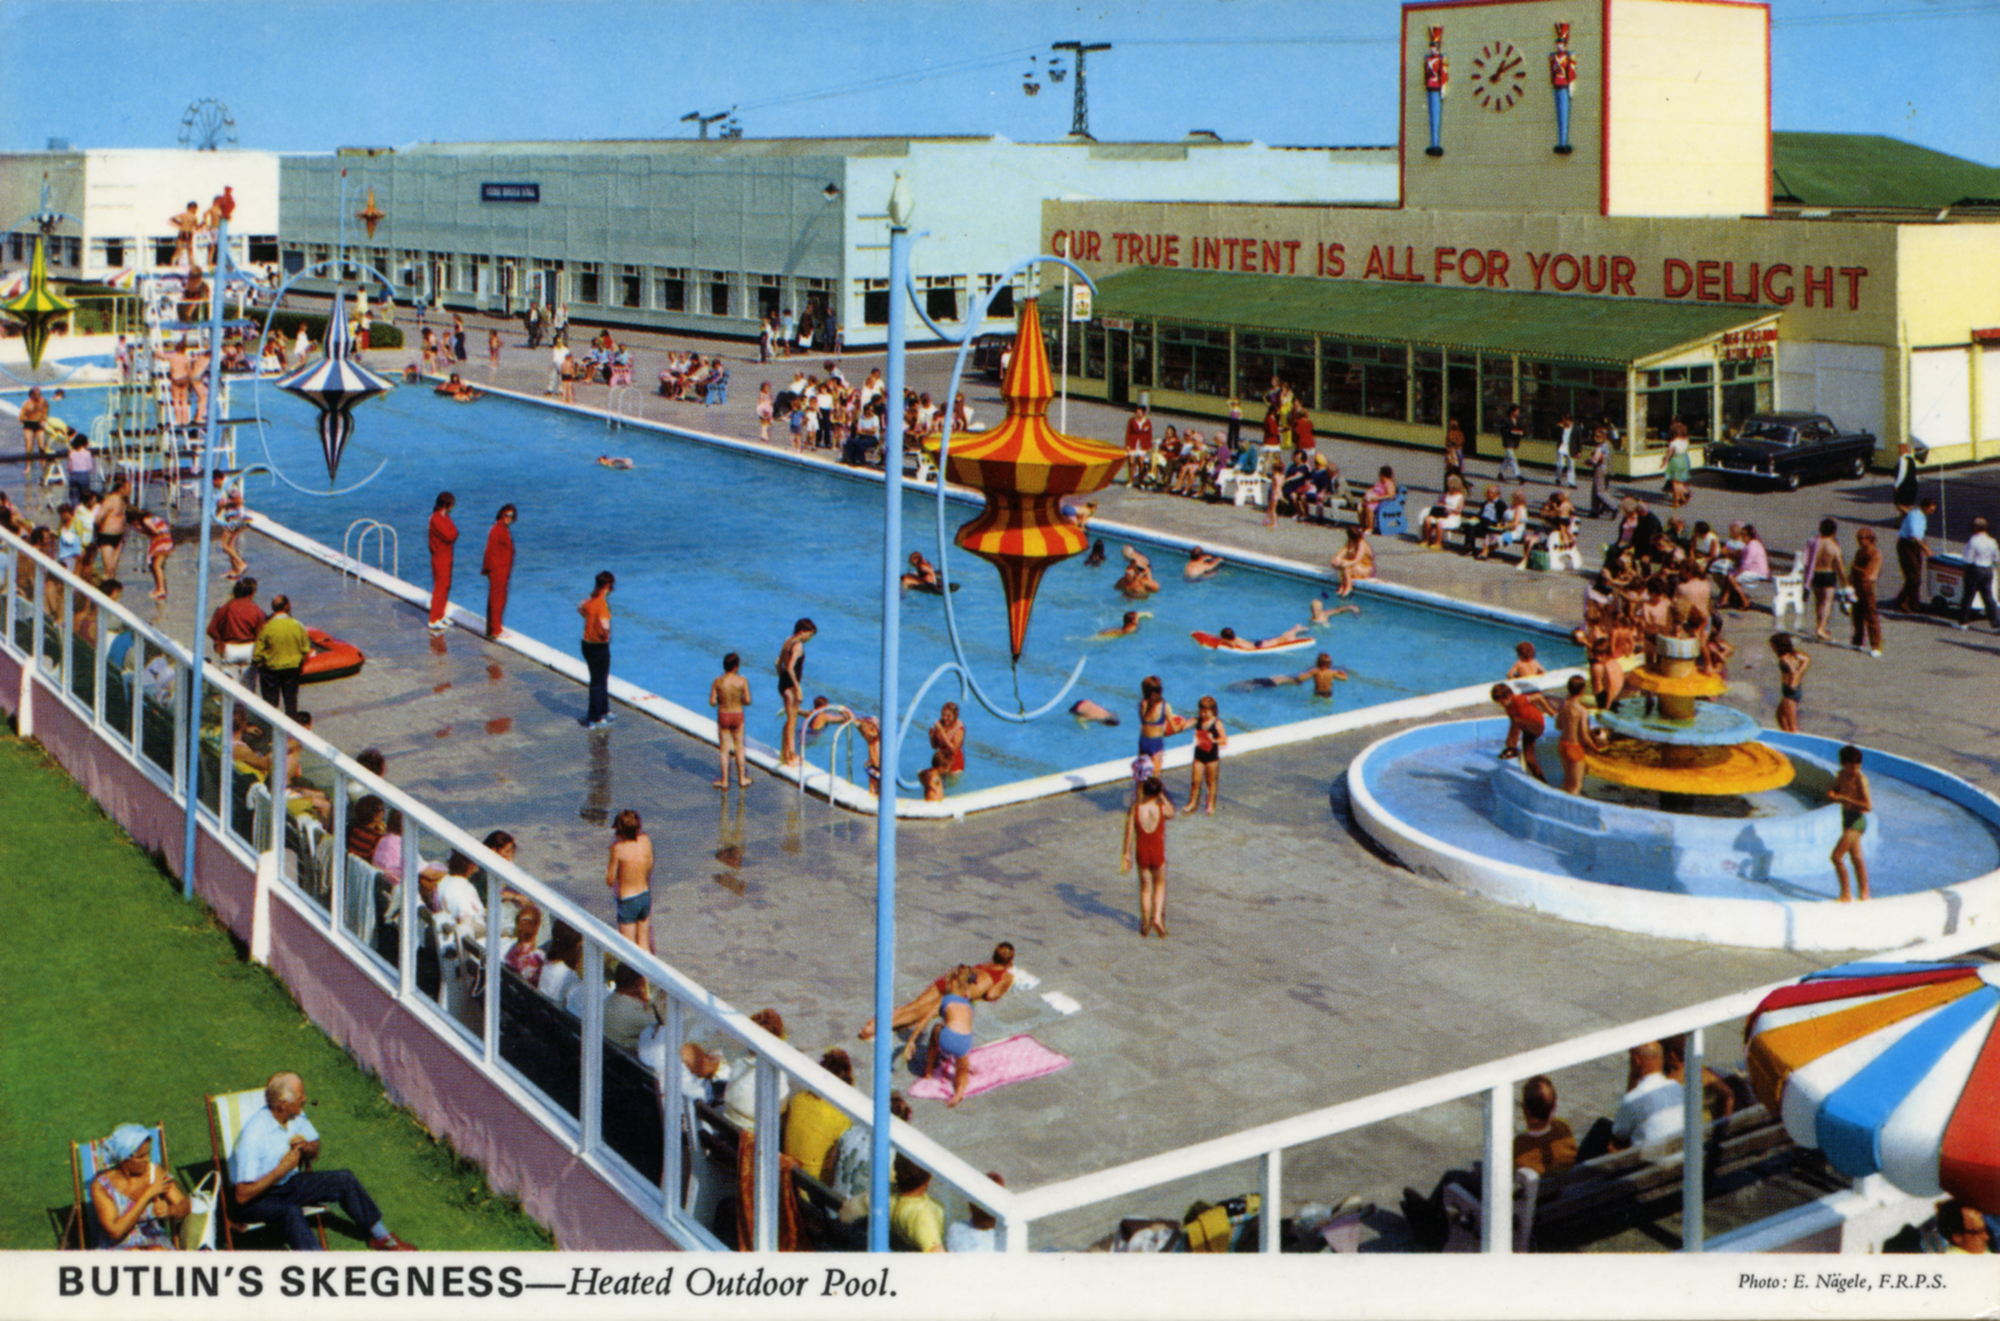 Butlin's Holiday Camp, Skegness, Lincolnshire - Heated Outdoor Pool © The John Hinde Archive / Mary Evans